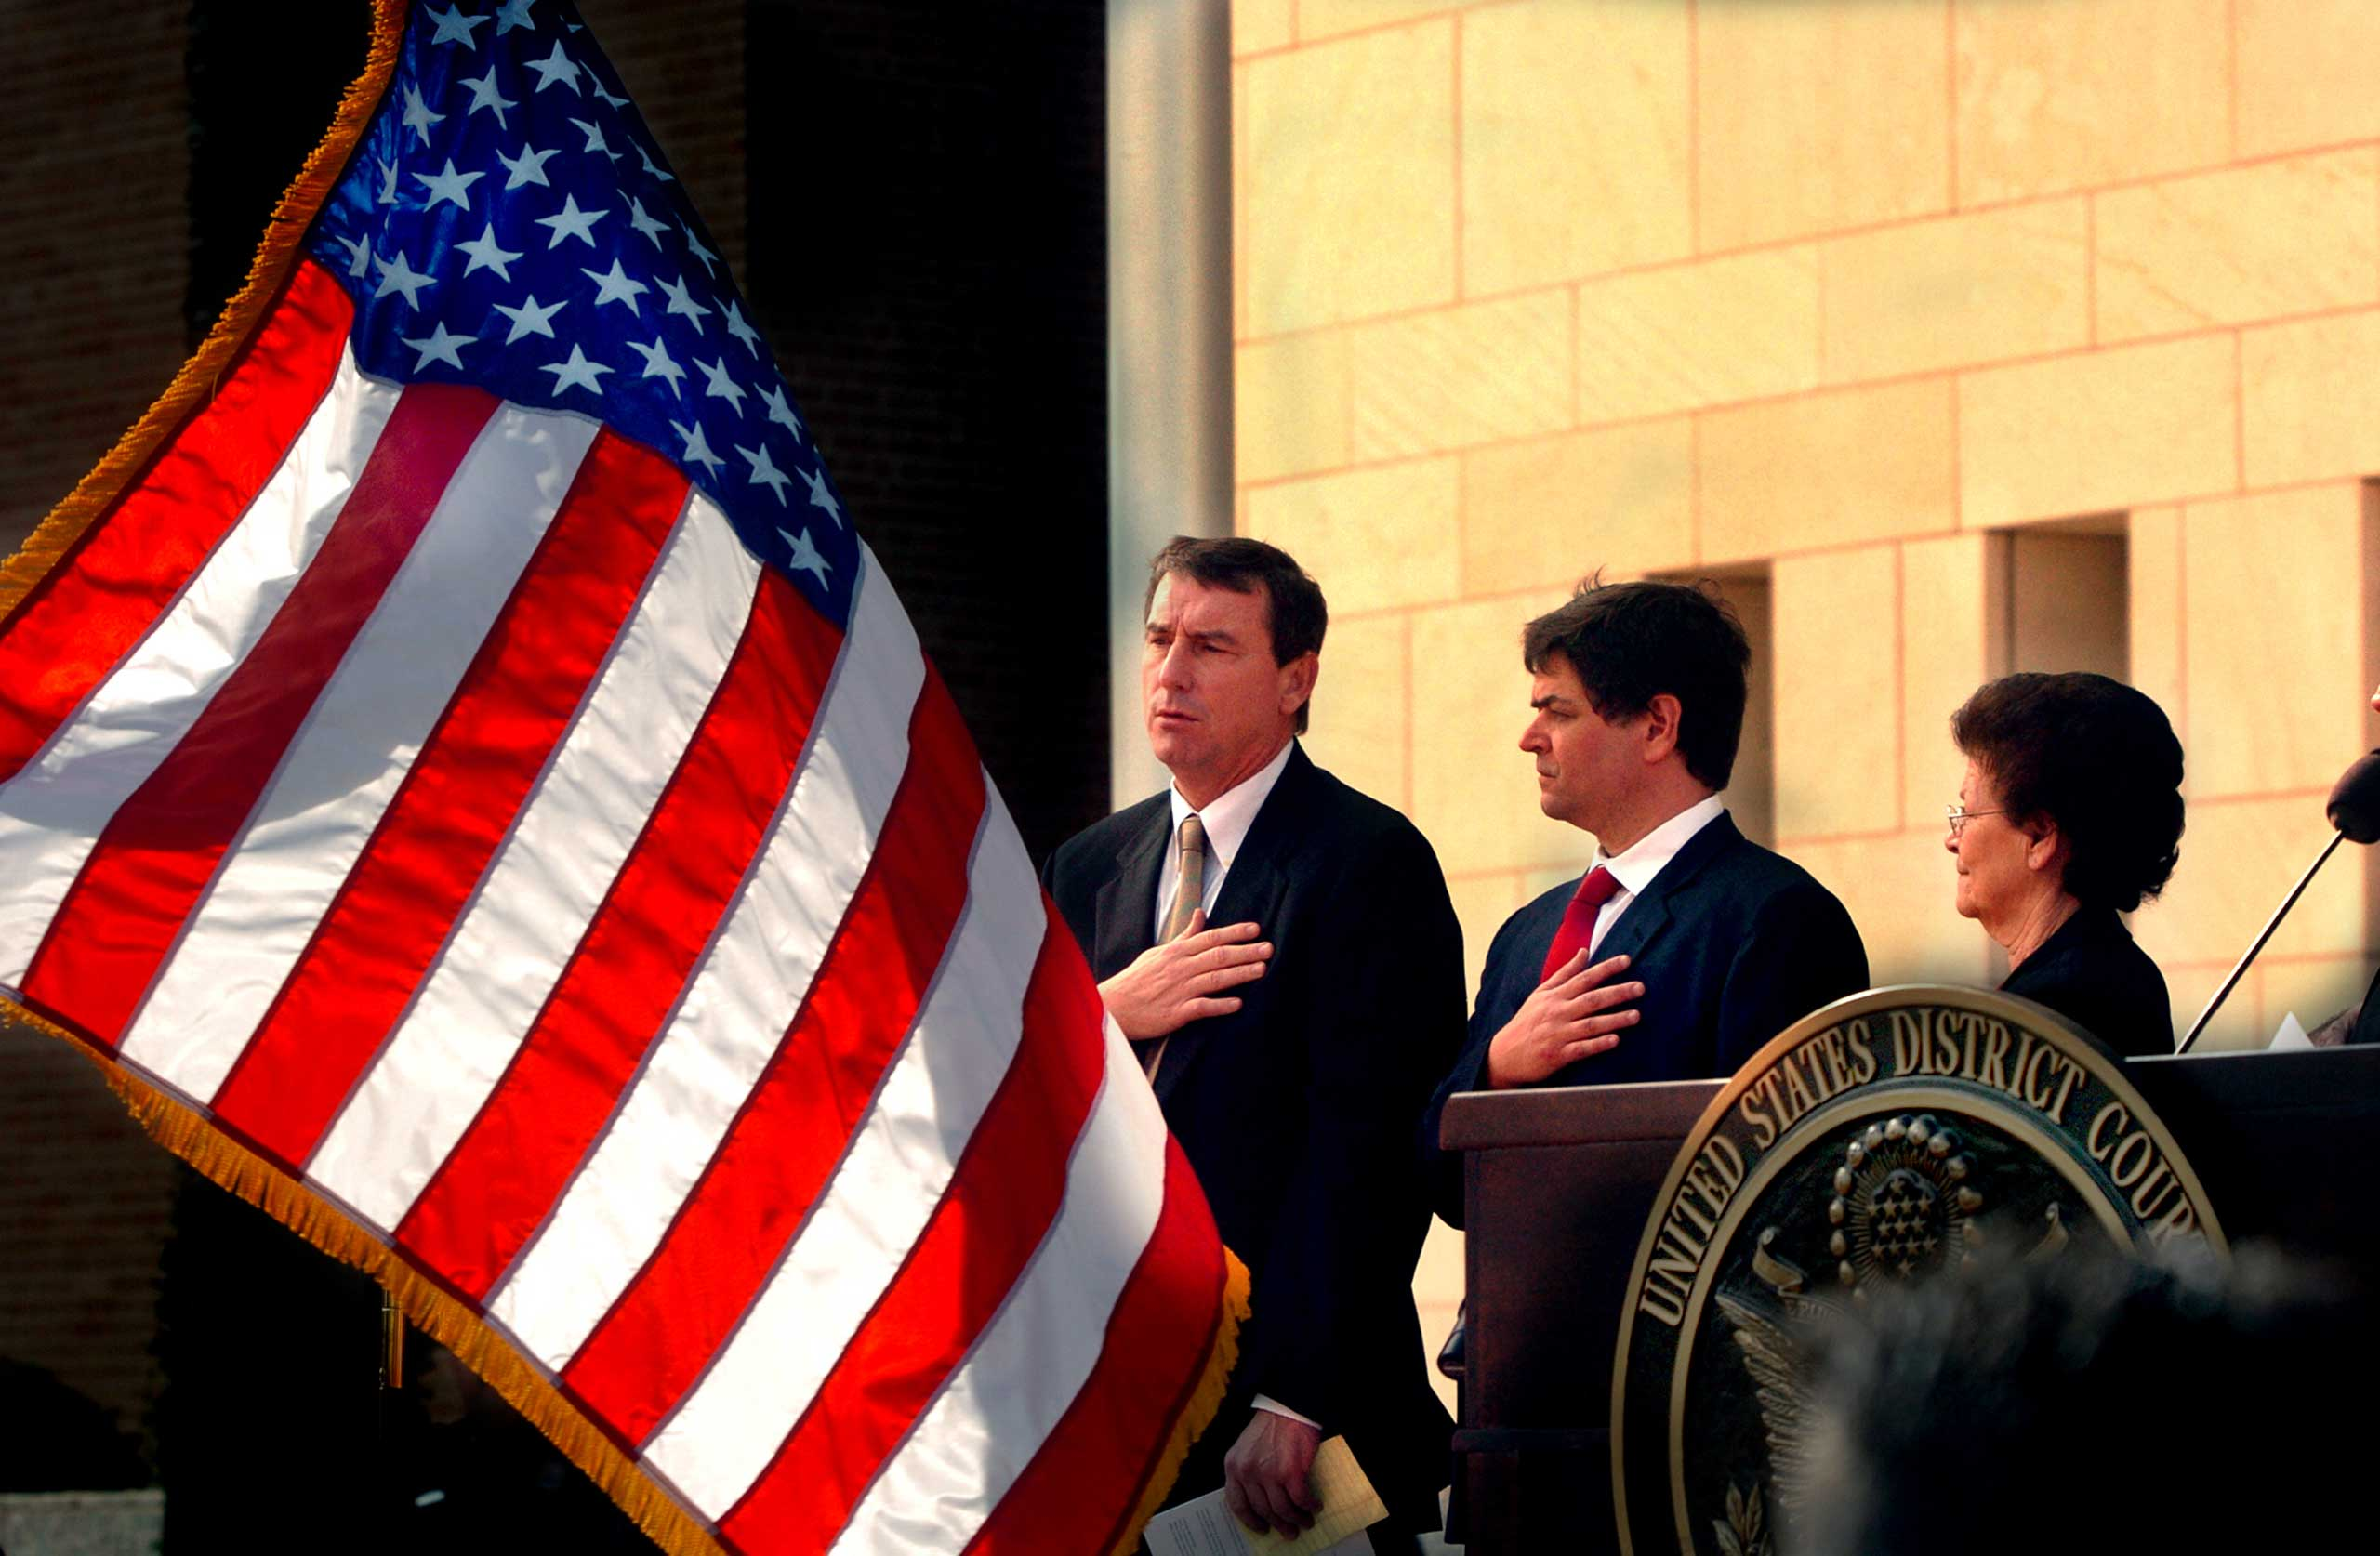 U.S. Southern District Judge Andrew S. Hanen, left, recites the Pledge of Allegiance during the United States Courthouse naming ceremony in Brownsville, Texas, Nov. 14, 2005.